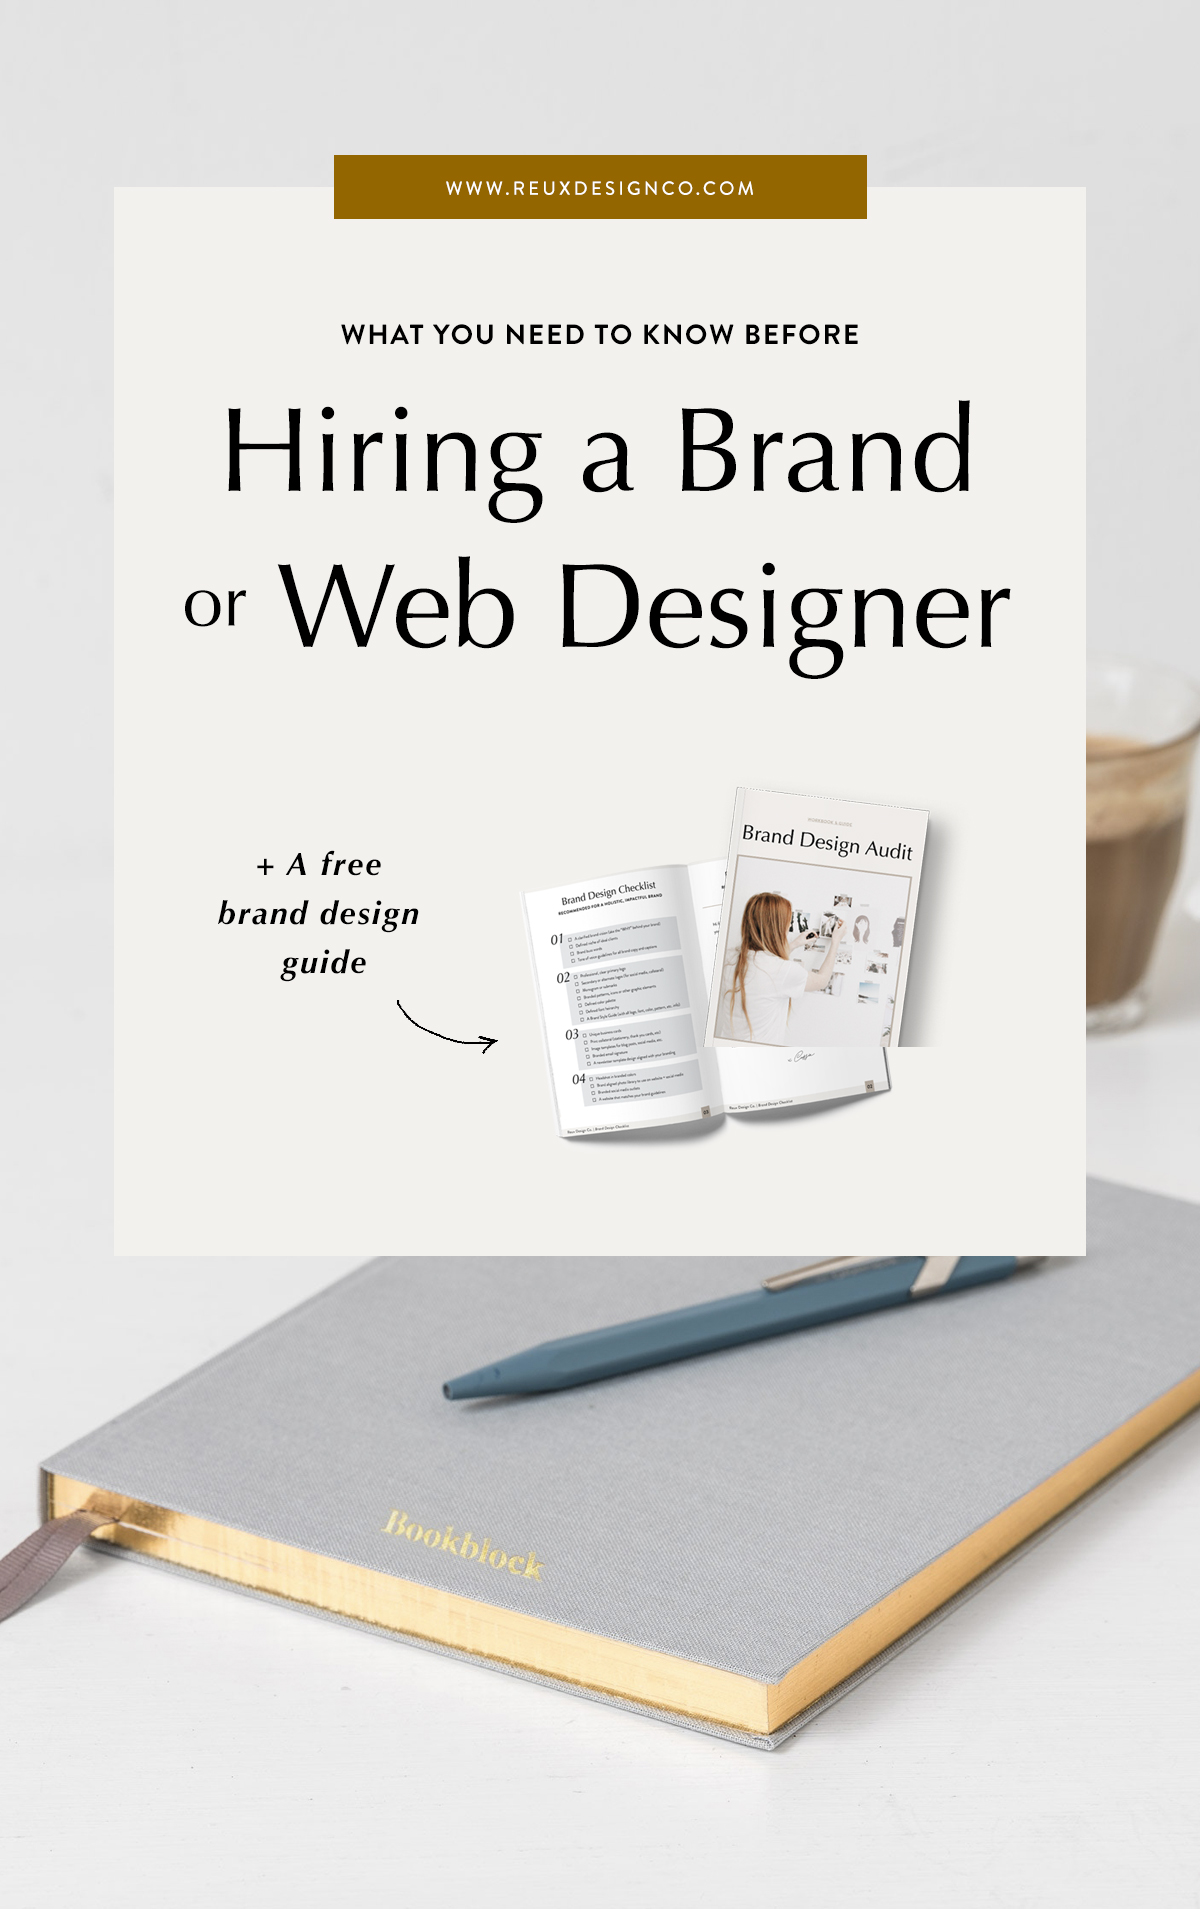 4 myths you shouldn't believe and what you need to know before hiring a brand or web designer | Reux Design Co. — Brand & Web Design for Holistic, Sustainable Businesses